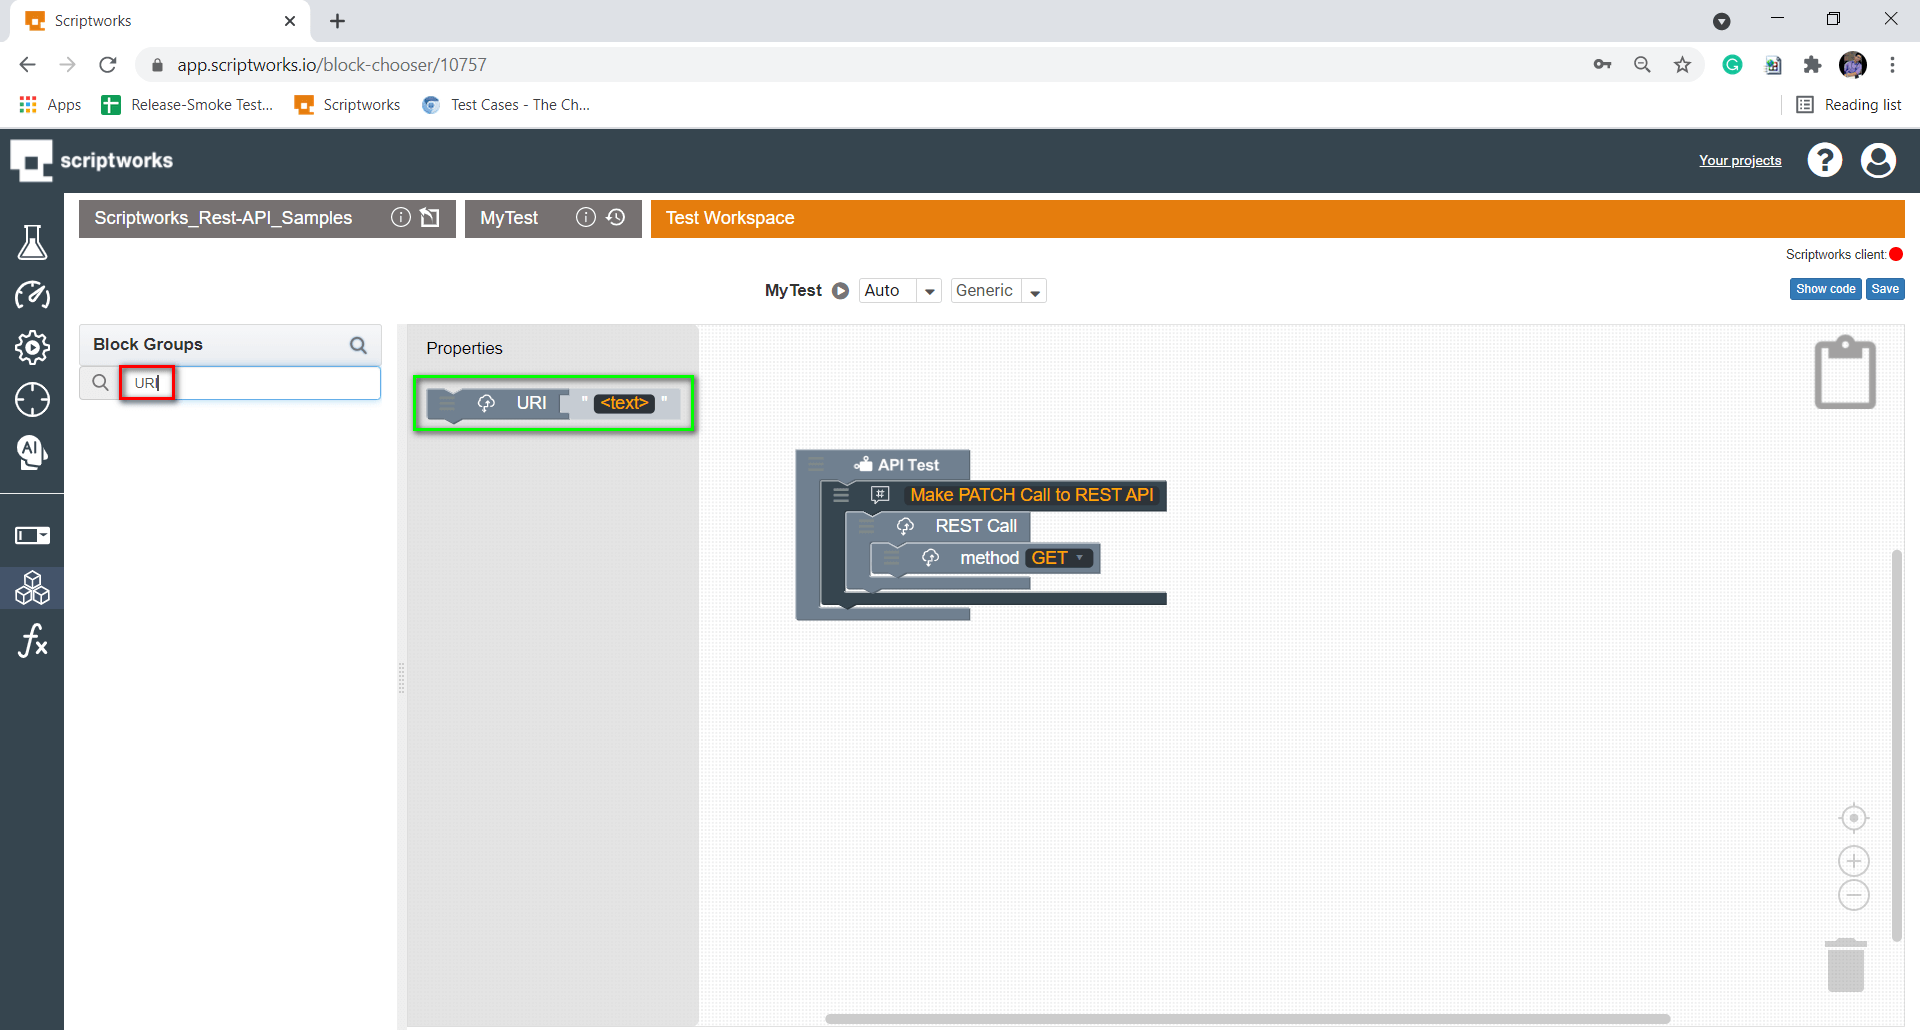 Search URI from Search Box present in left hand side panel